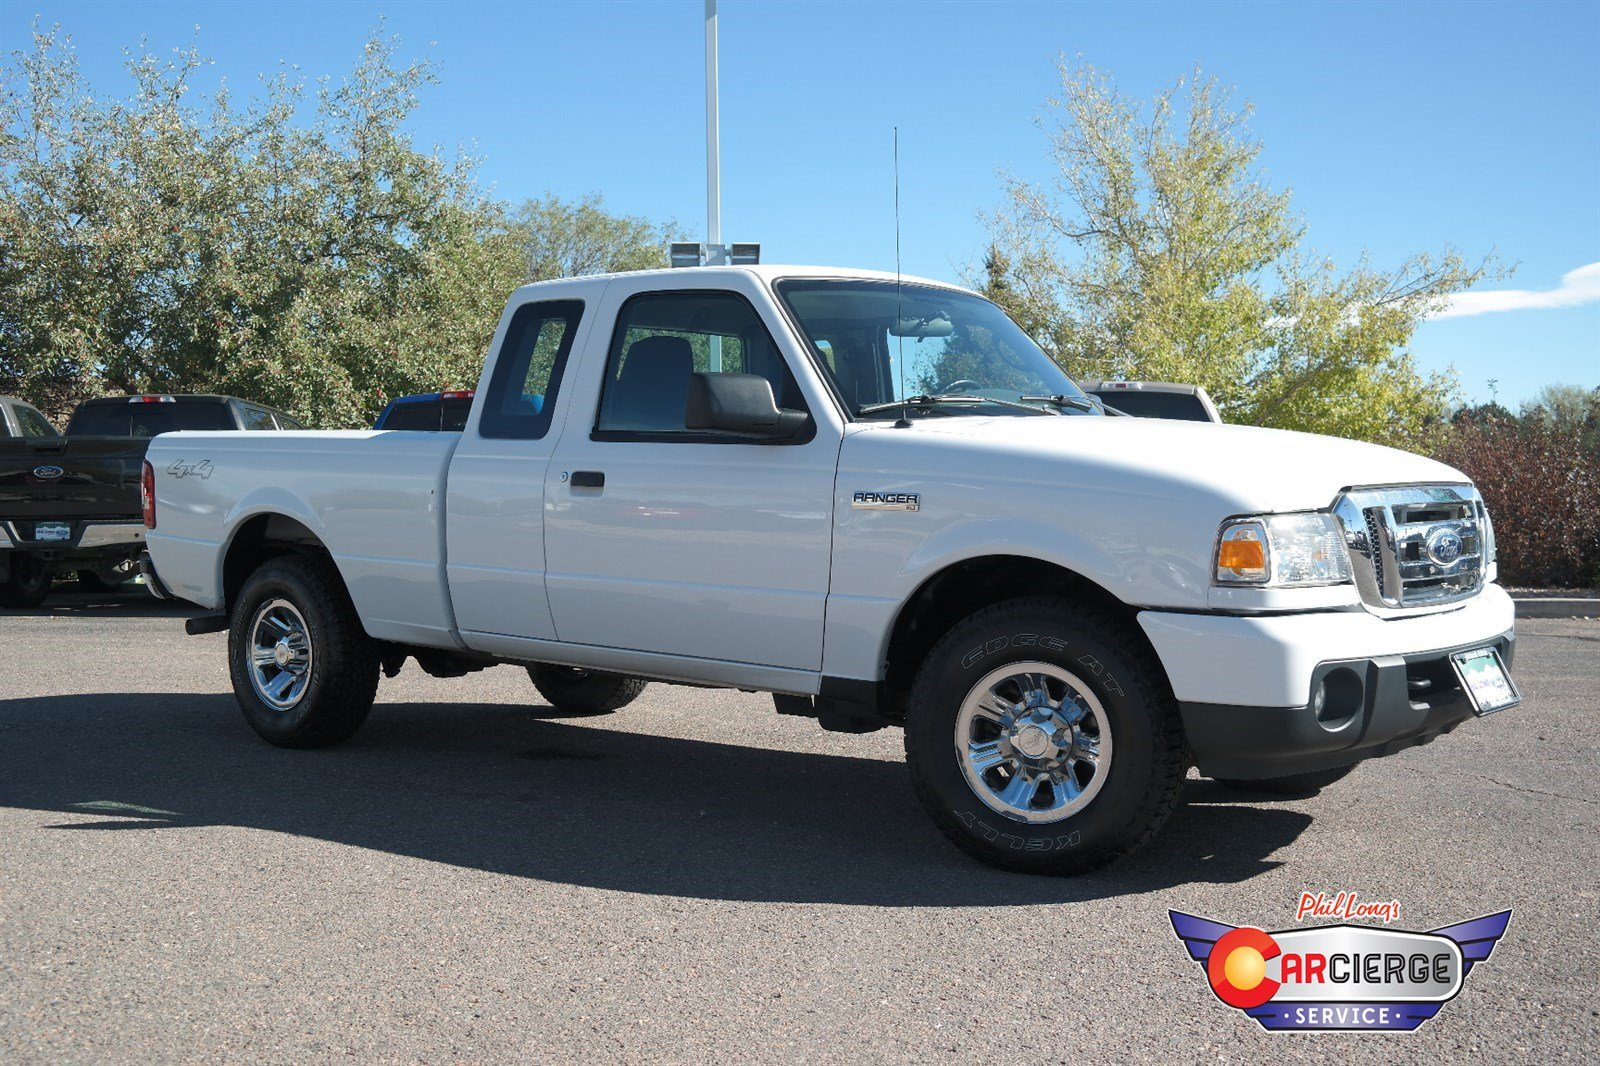 Photo Pre-Owned 2009 Ford Ranger XLT 4-Wheel Drive Extended Cab Pickup